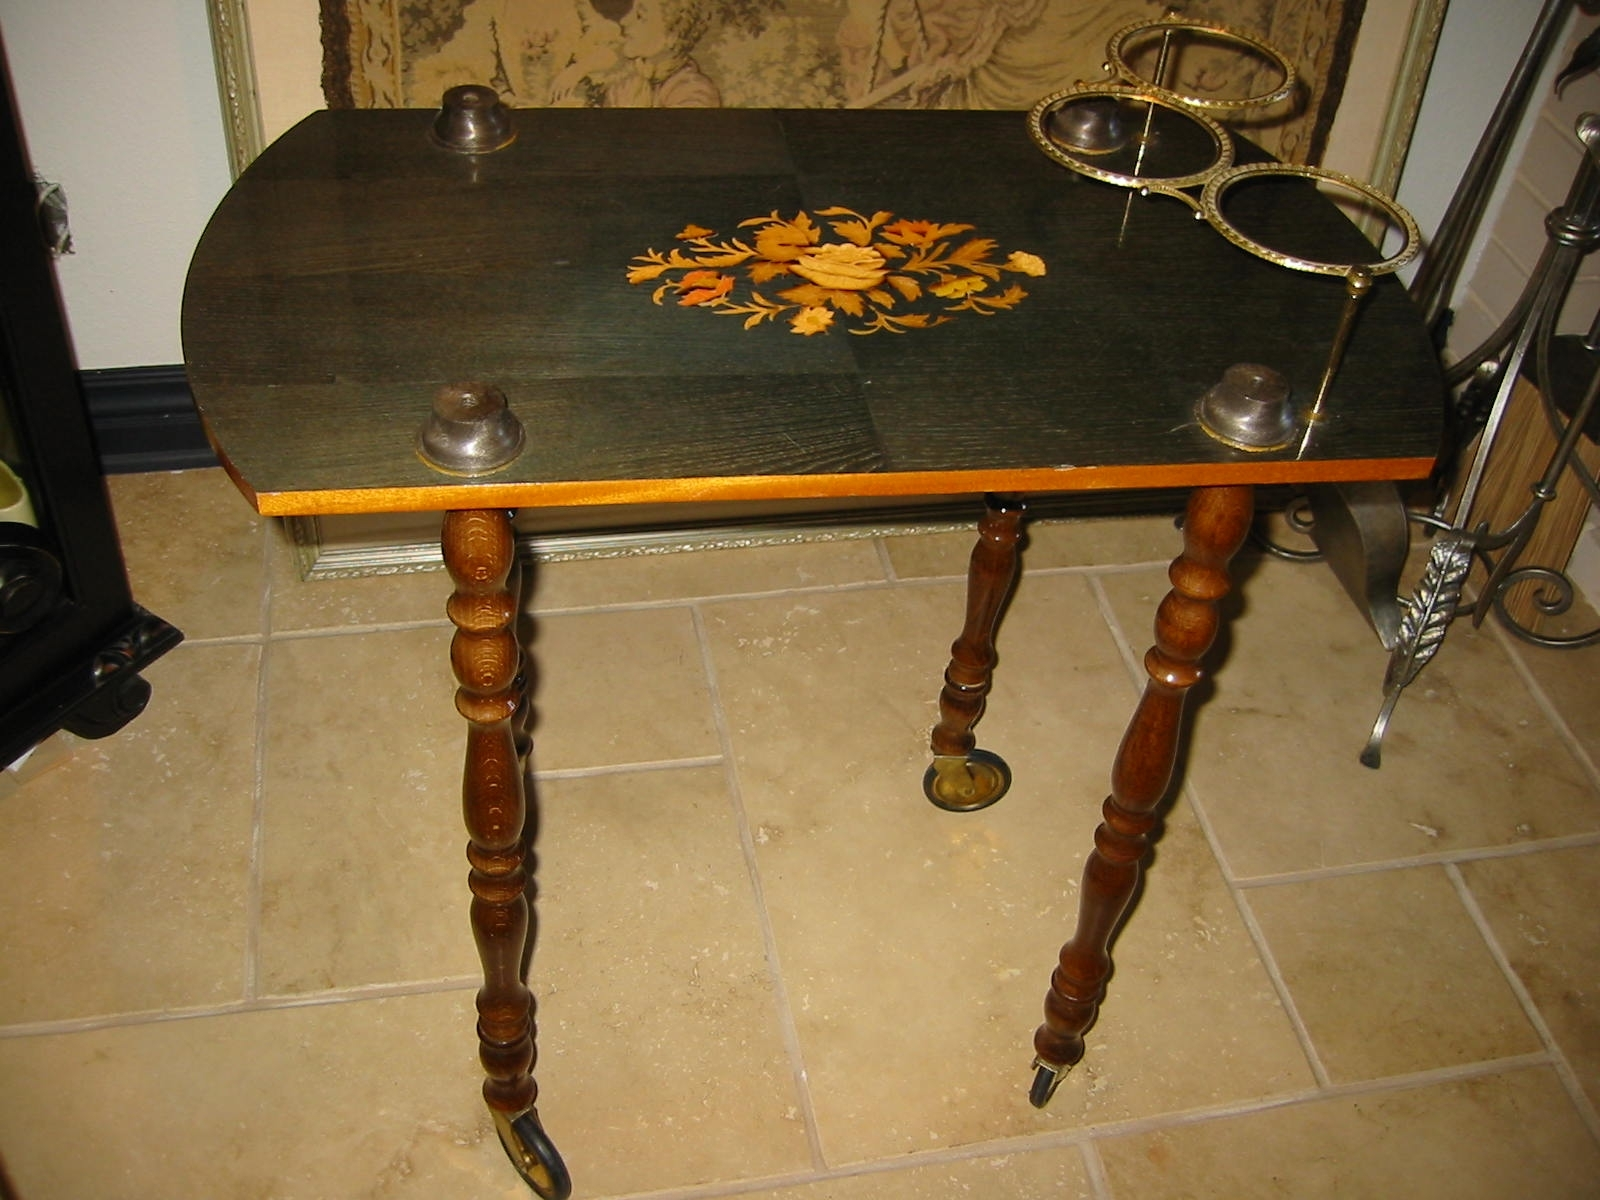 Antiques | Classifieds| Antiques » Antique Furniture » Antique regarding Antiqued Art Deco Coffee Tables (Image 9 of 30)